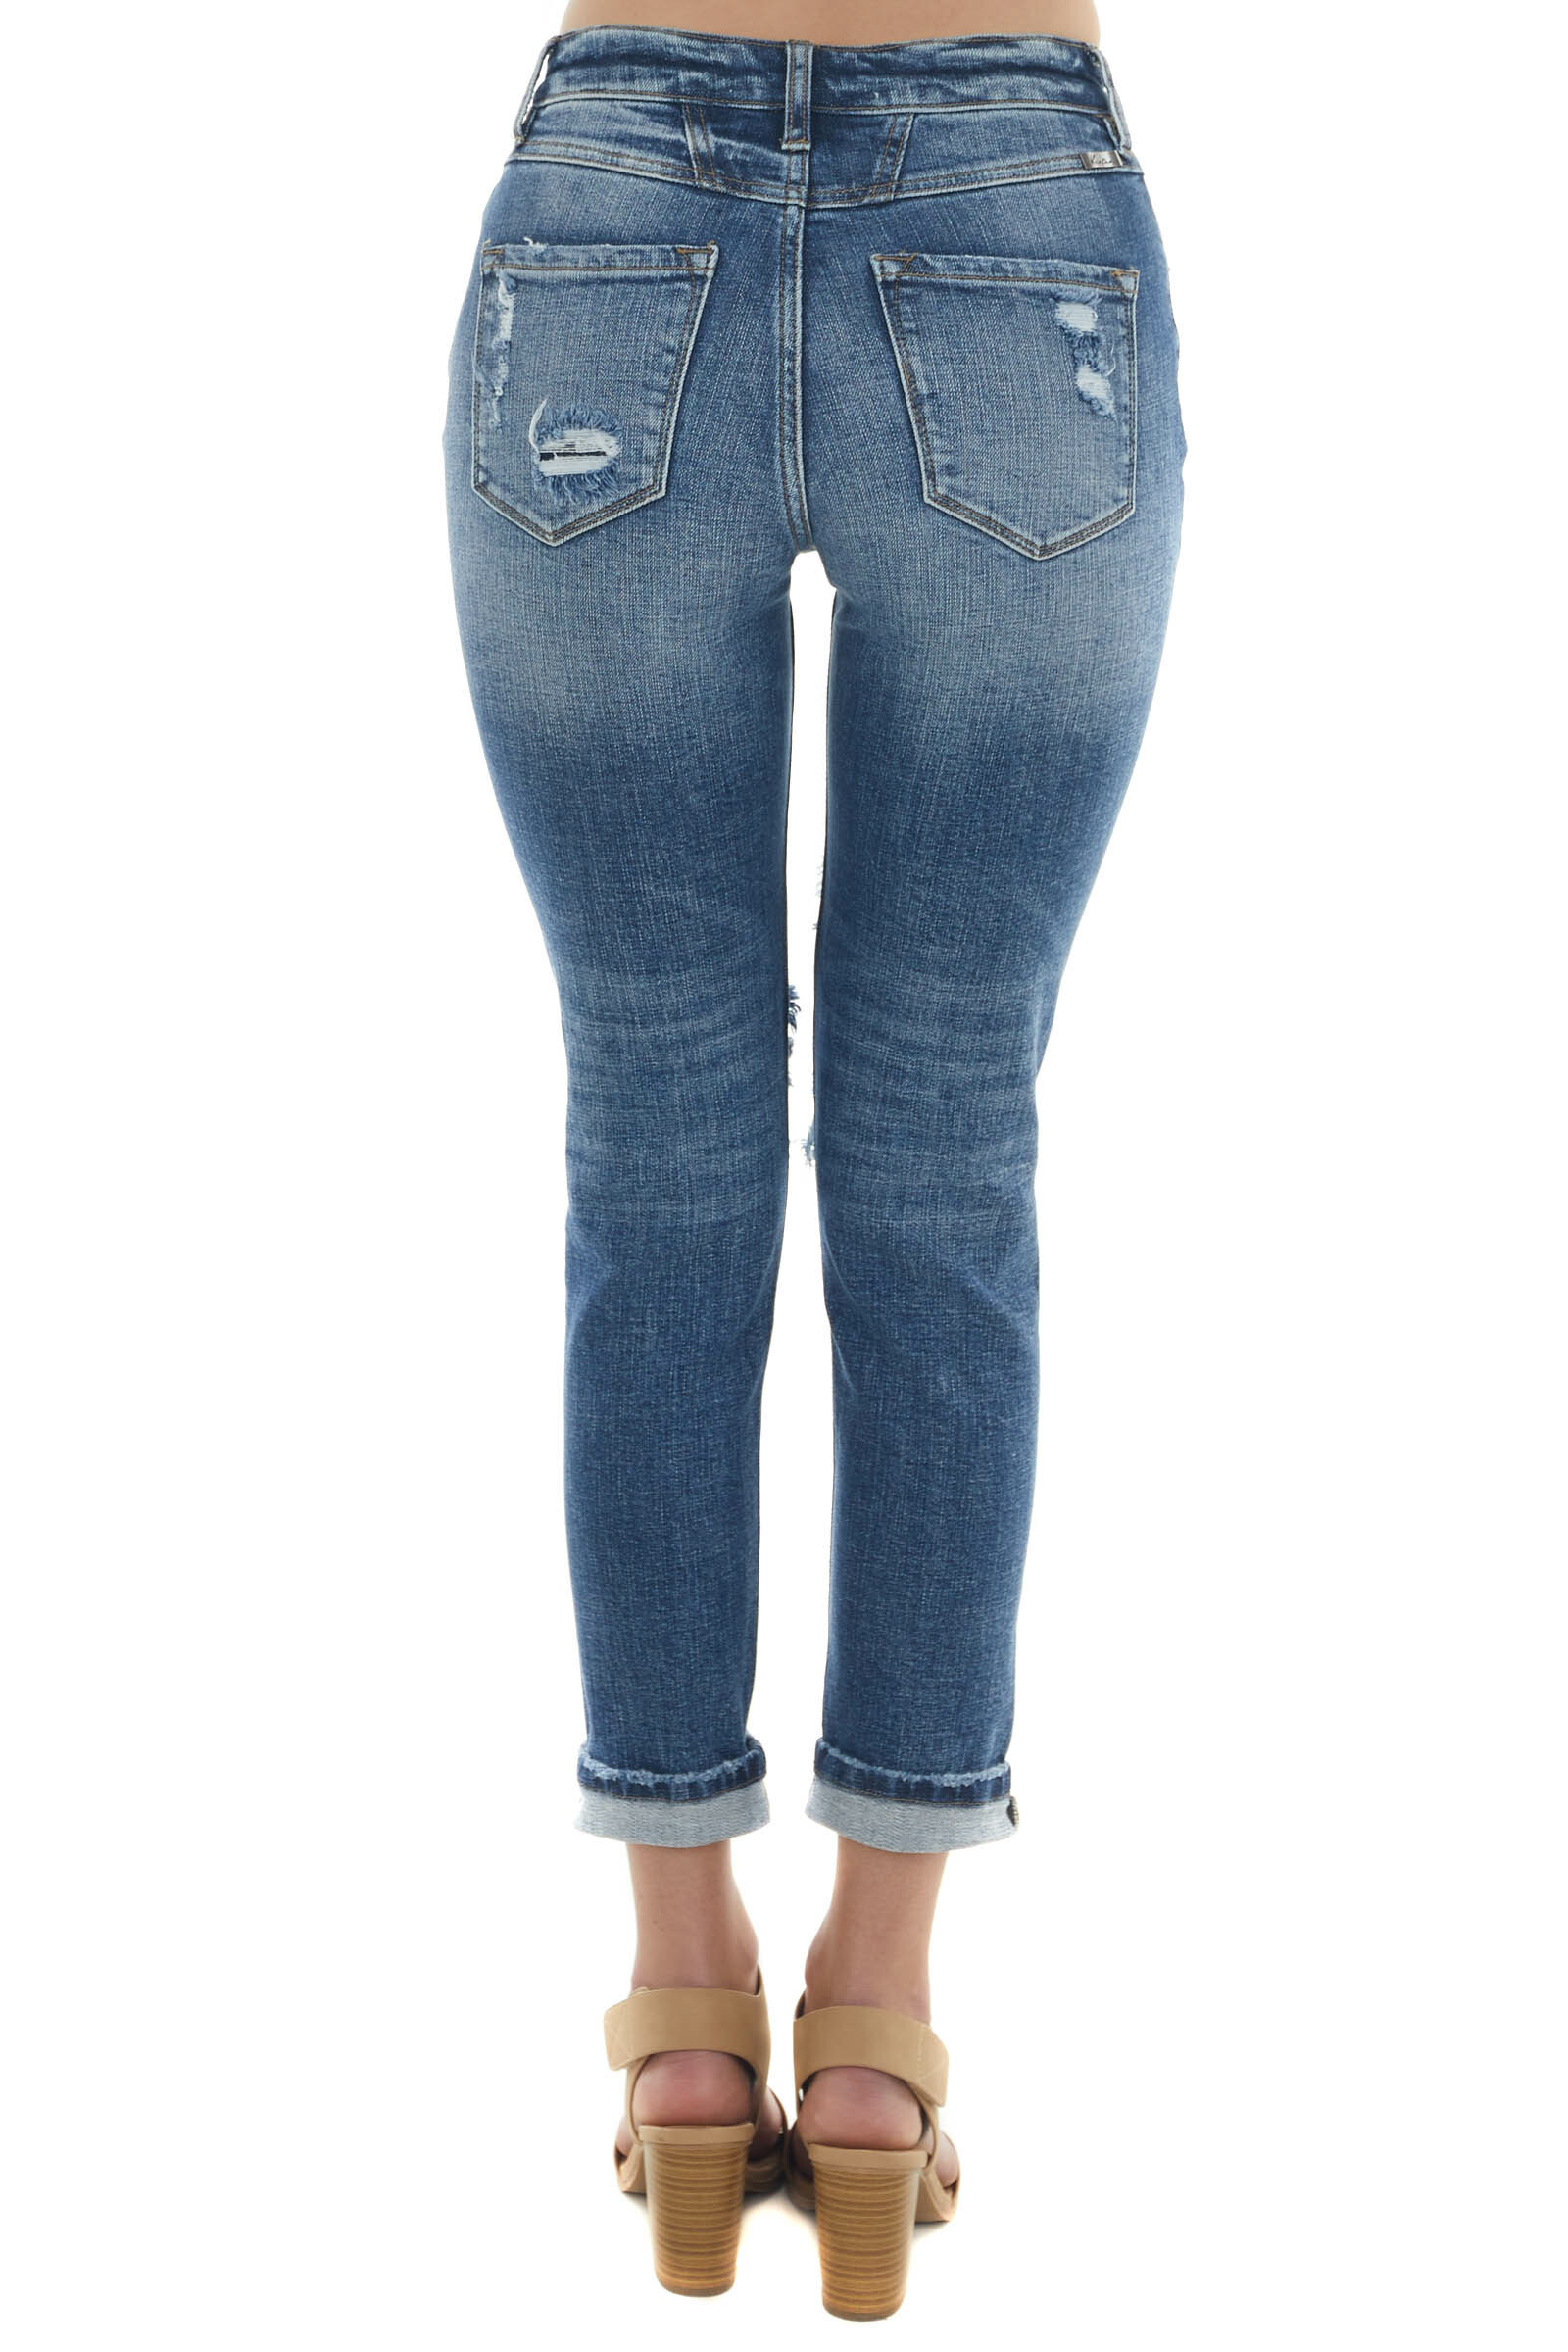 Medium Wash High Rise Distressed Mom Fit Jeans